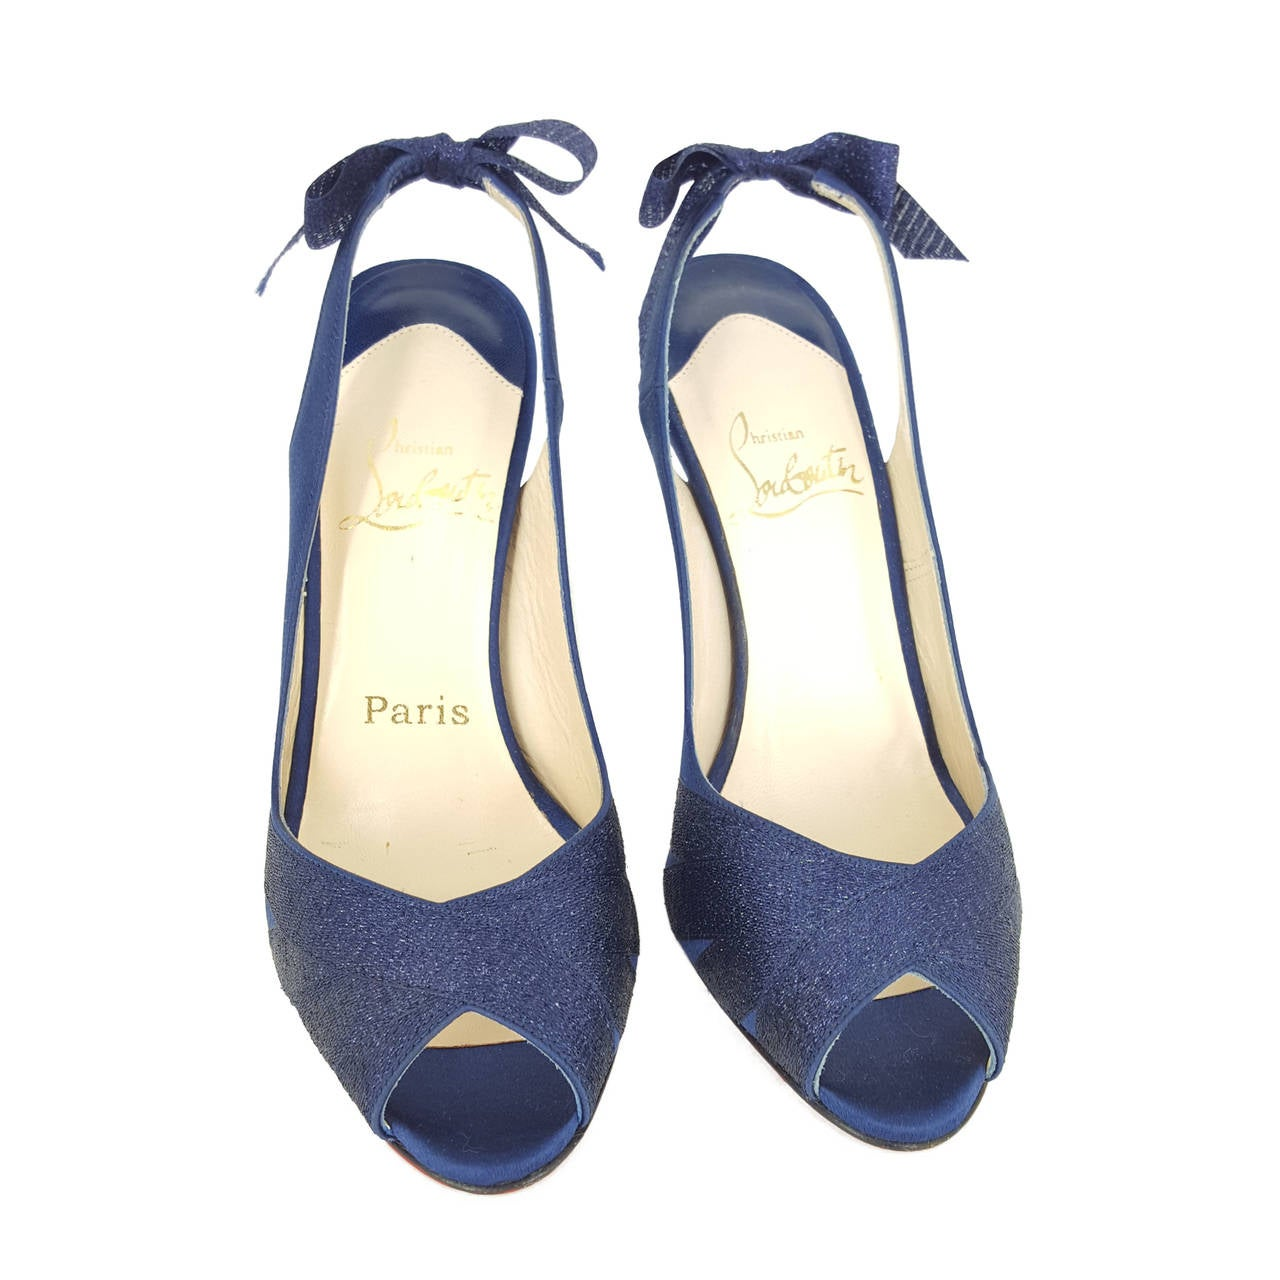 Christian Louboutin Navy Blue Sparkle Sling Back Heels With Bow.  Size 36 1